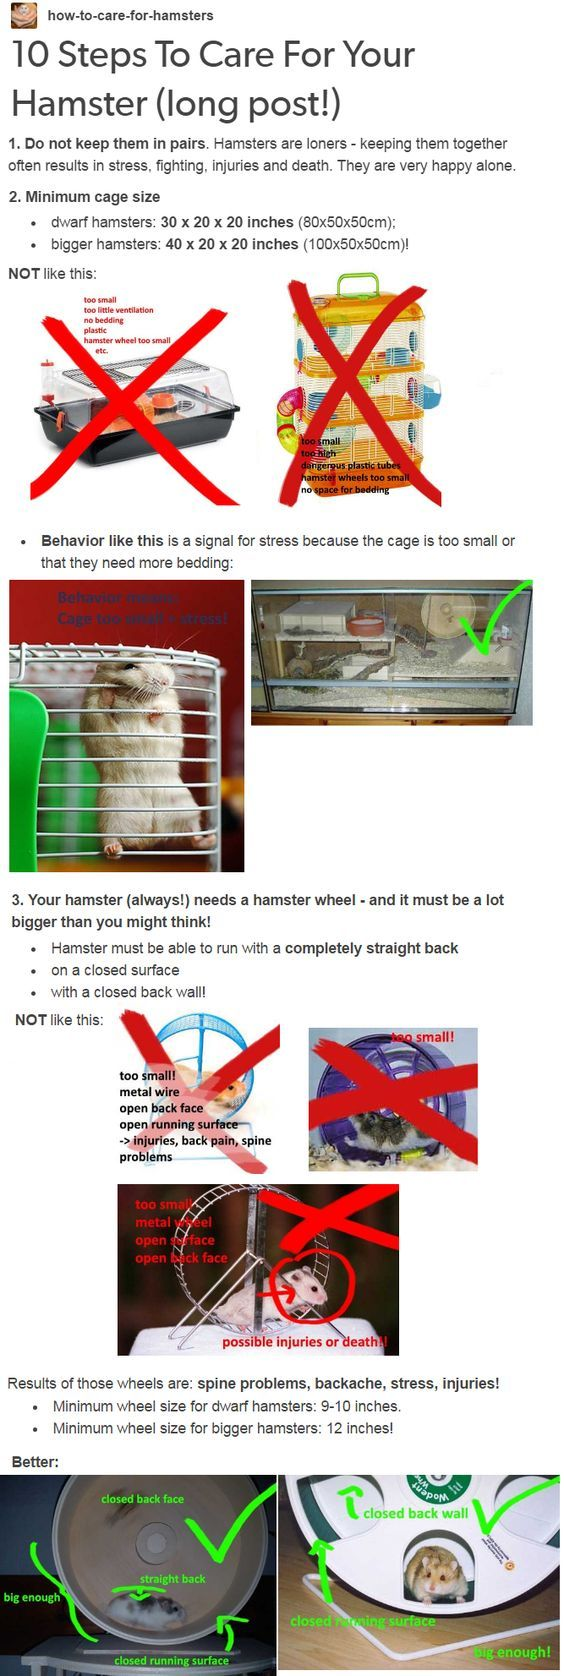 10 Steps To Care For Your Hamster. MORE IN THE LINK.4Do not buy them ...